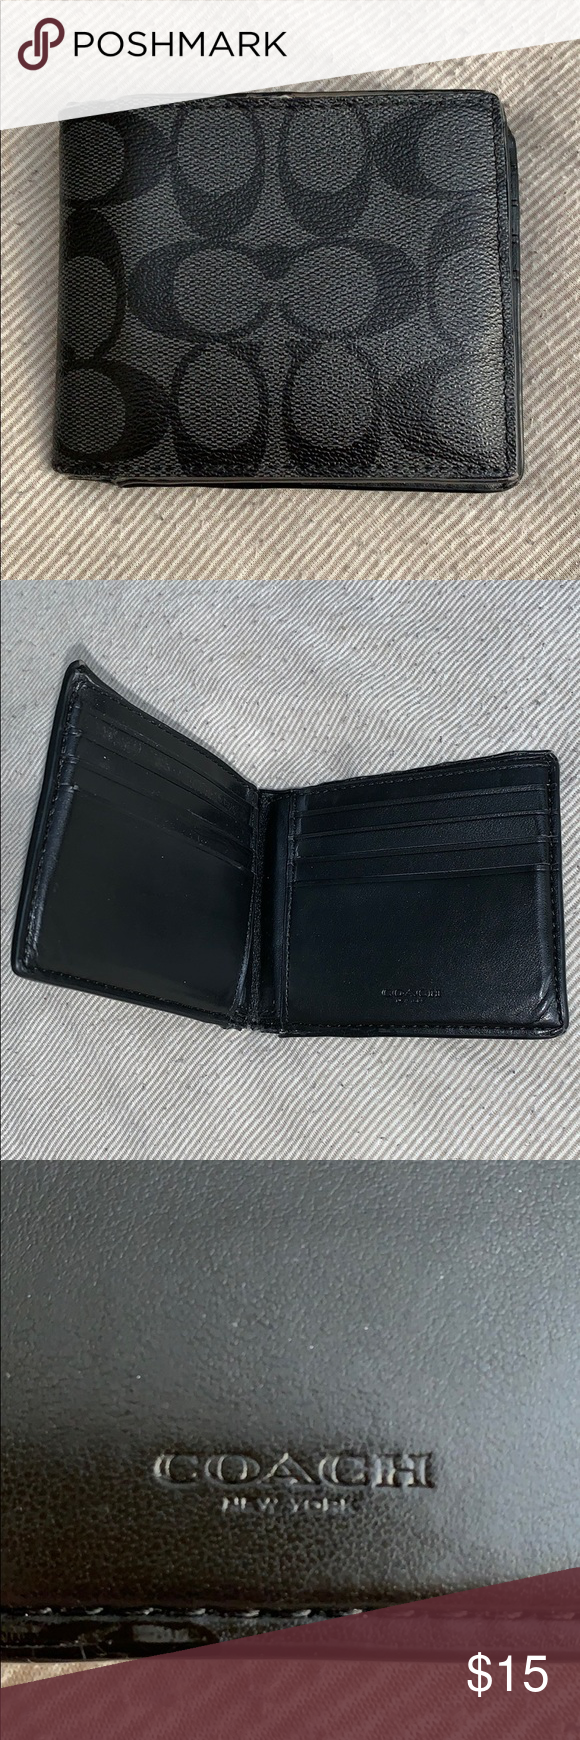 10e24ab2a9 Coach Slim Billfold Wallet In Signature Canvas This is my old wallet ...